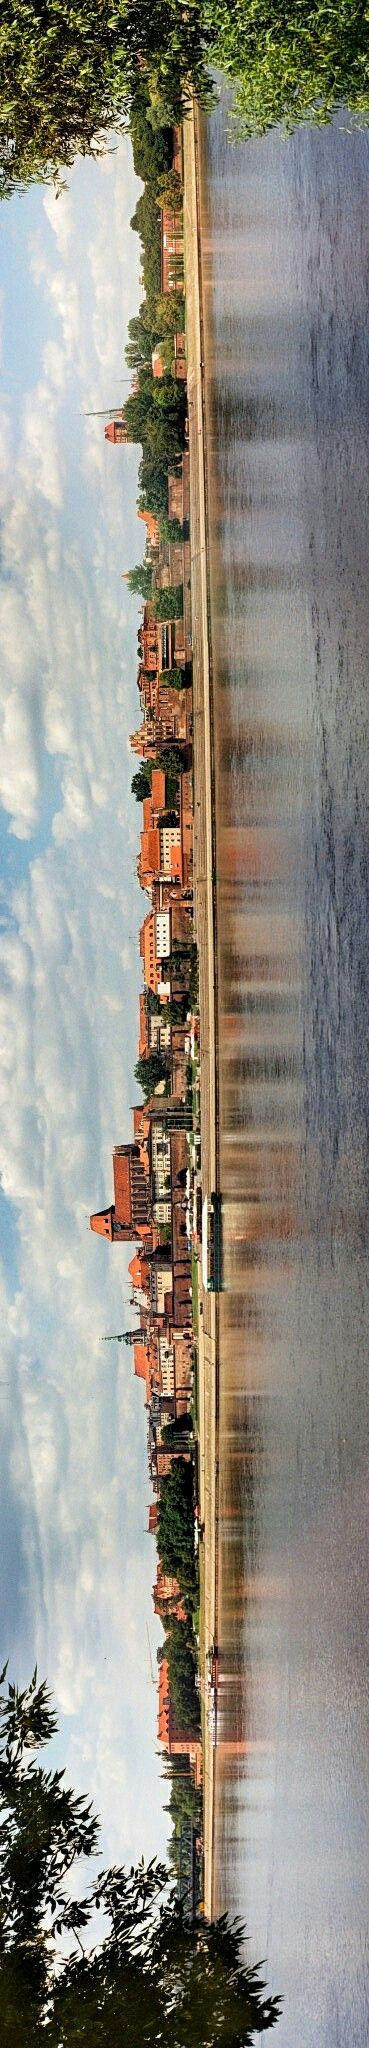 Toruń[ˈtɔruɲ](German:Thorn) is a city in northernPoland, on theVistulaRiver. Its population was 203,148 as of June 2014. Toruń is one of the oldest cities in Poland. The medieval old town of Toruń is the birthplace of Polish astronomerNicolaus Copernicus. In 1997 the medieval part of the city was designated aUNESCOWorld Heritage Site. In 2007 the Old Town in Toruń was added to the list ofSeven Wonders of Poland